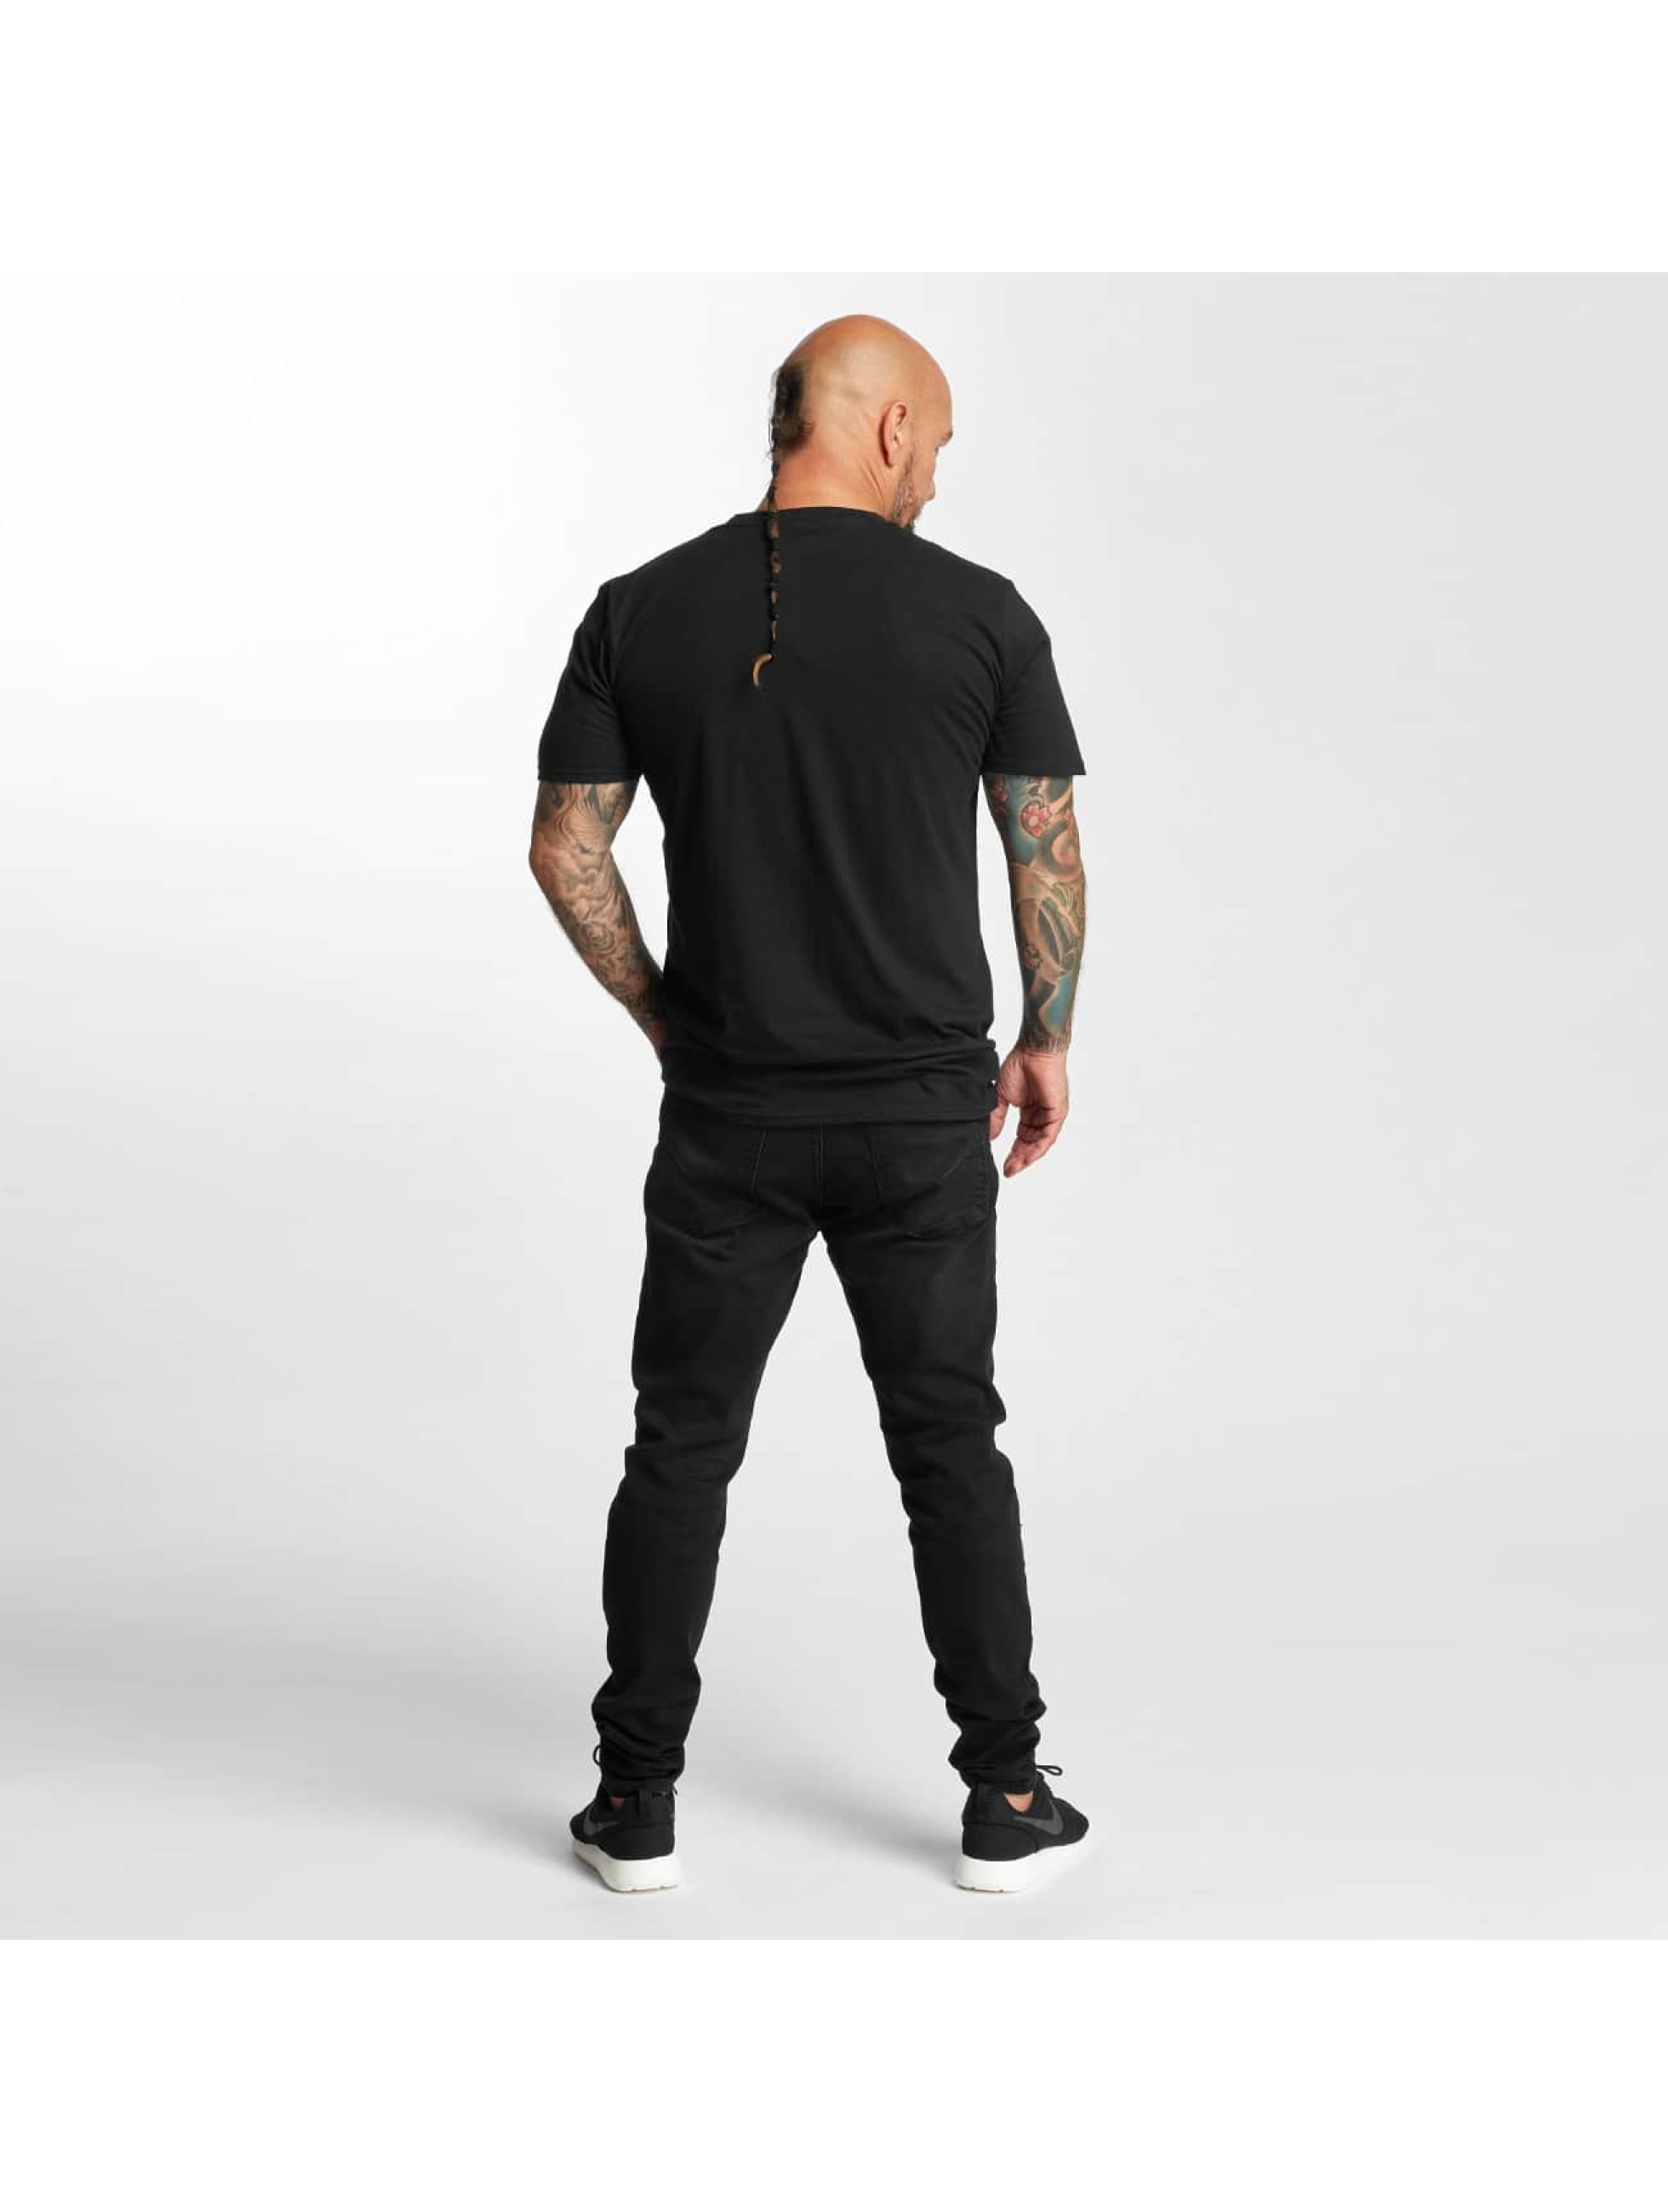 I Love Tattoo T-Shirt Anker black